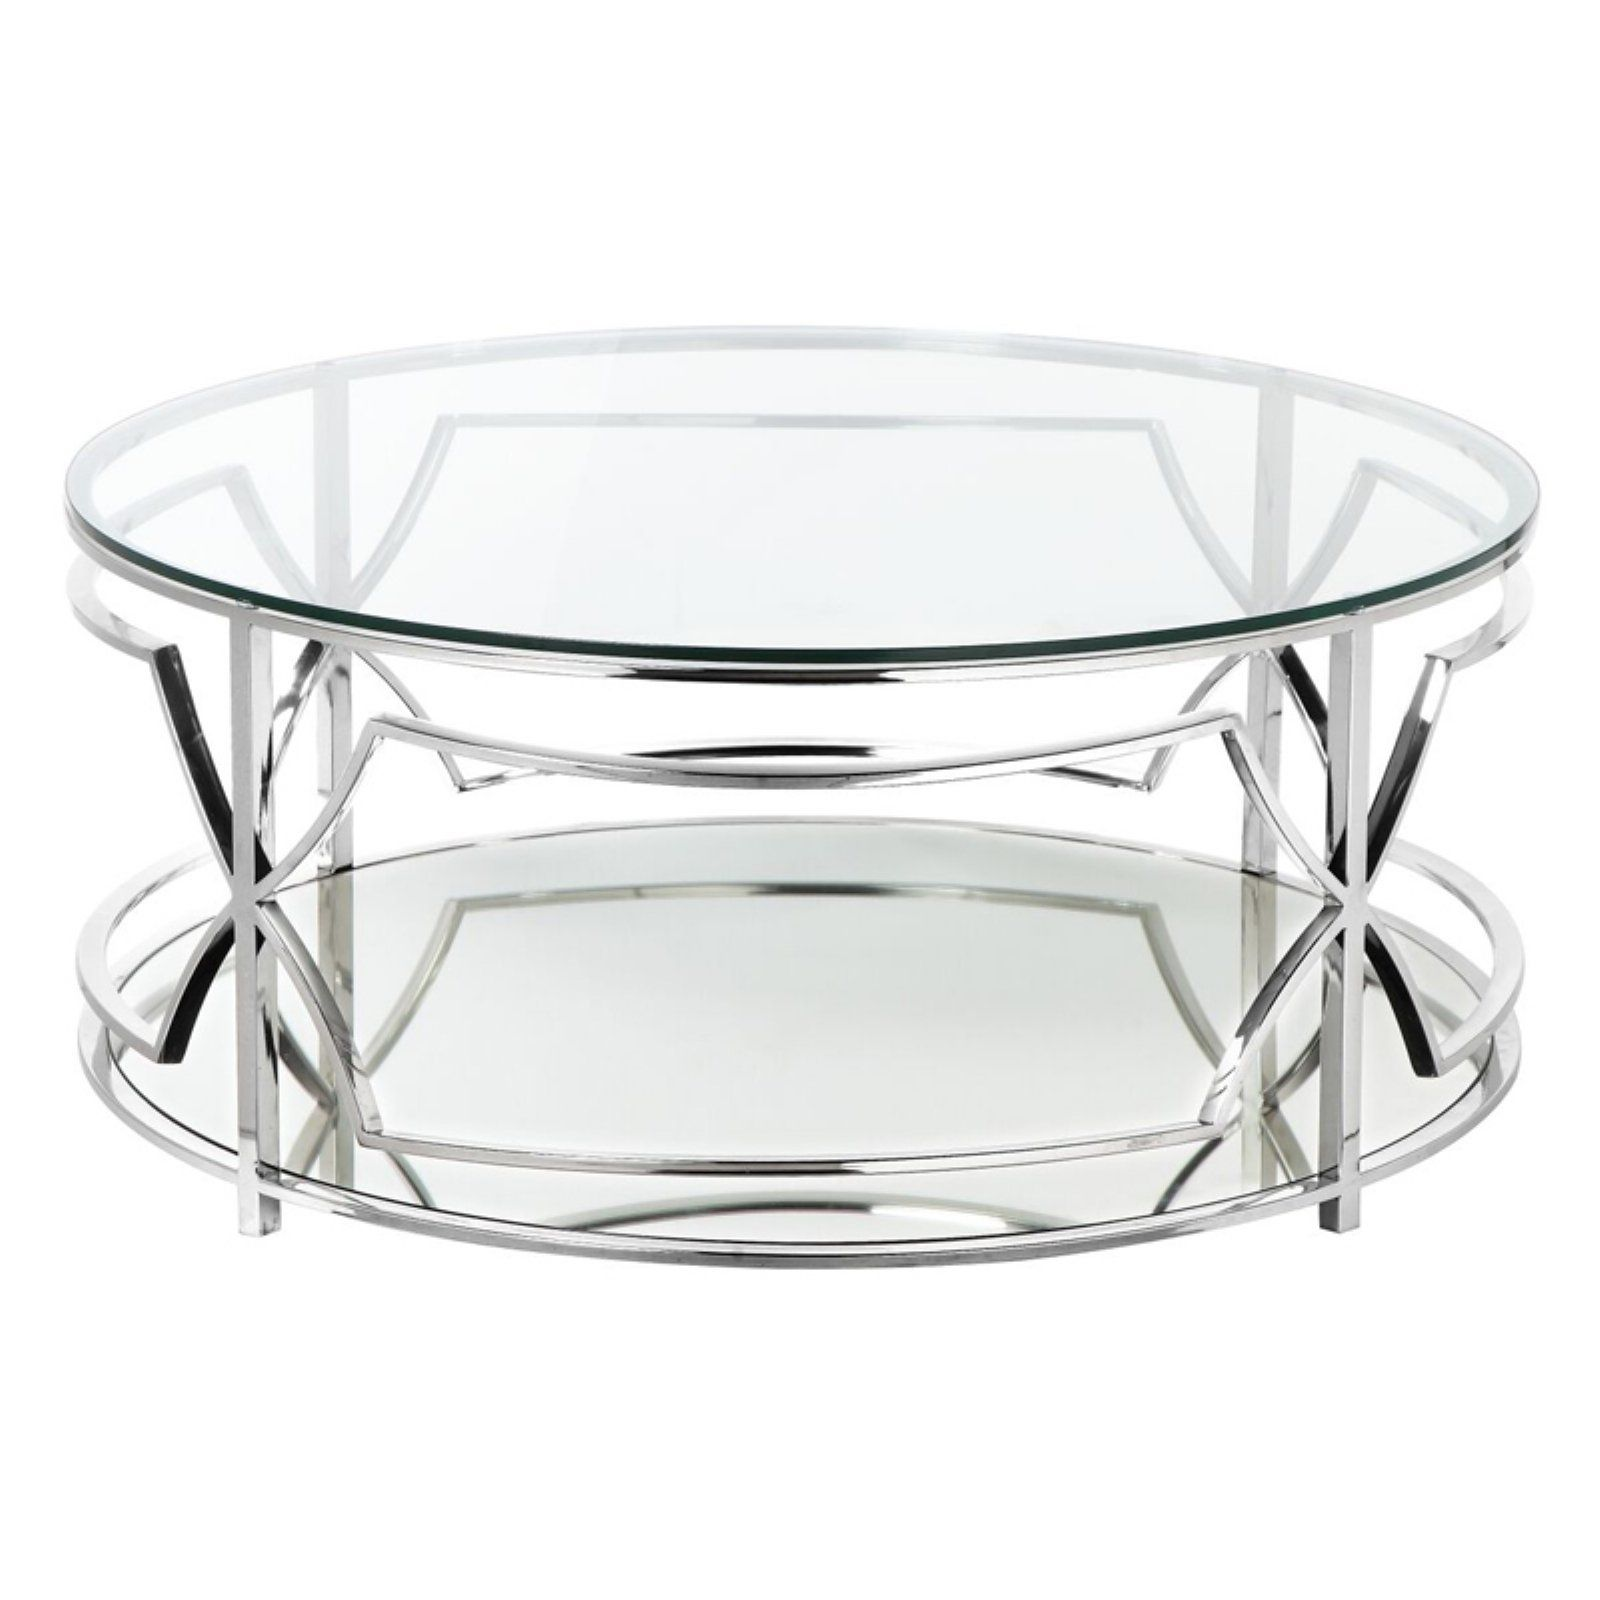 Home Round Coffee Table Lucite Coffee Tables Cool Coffee Tables